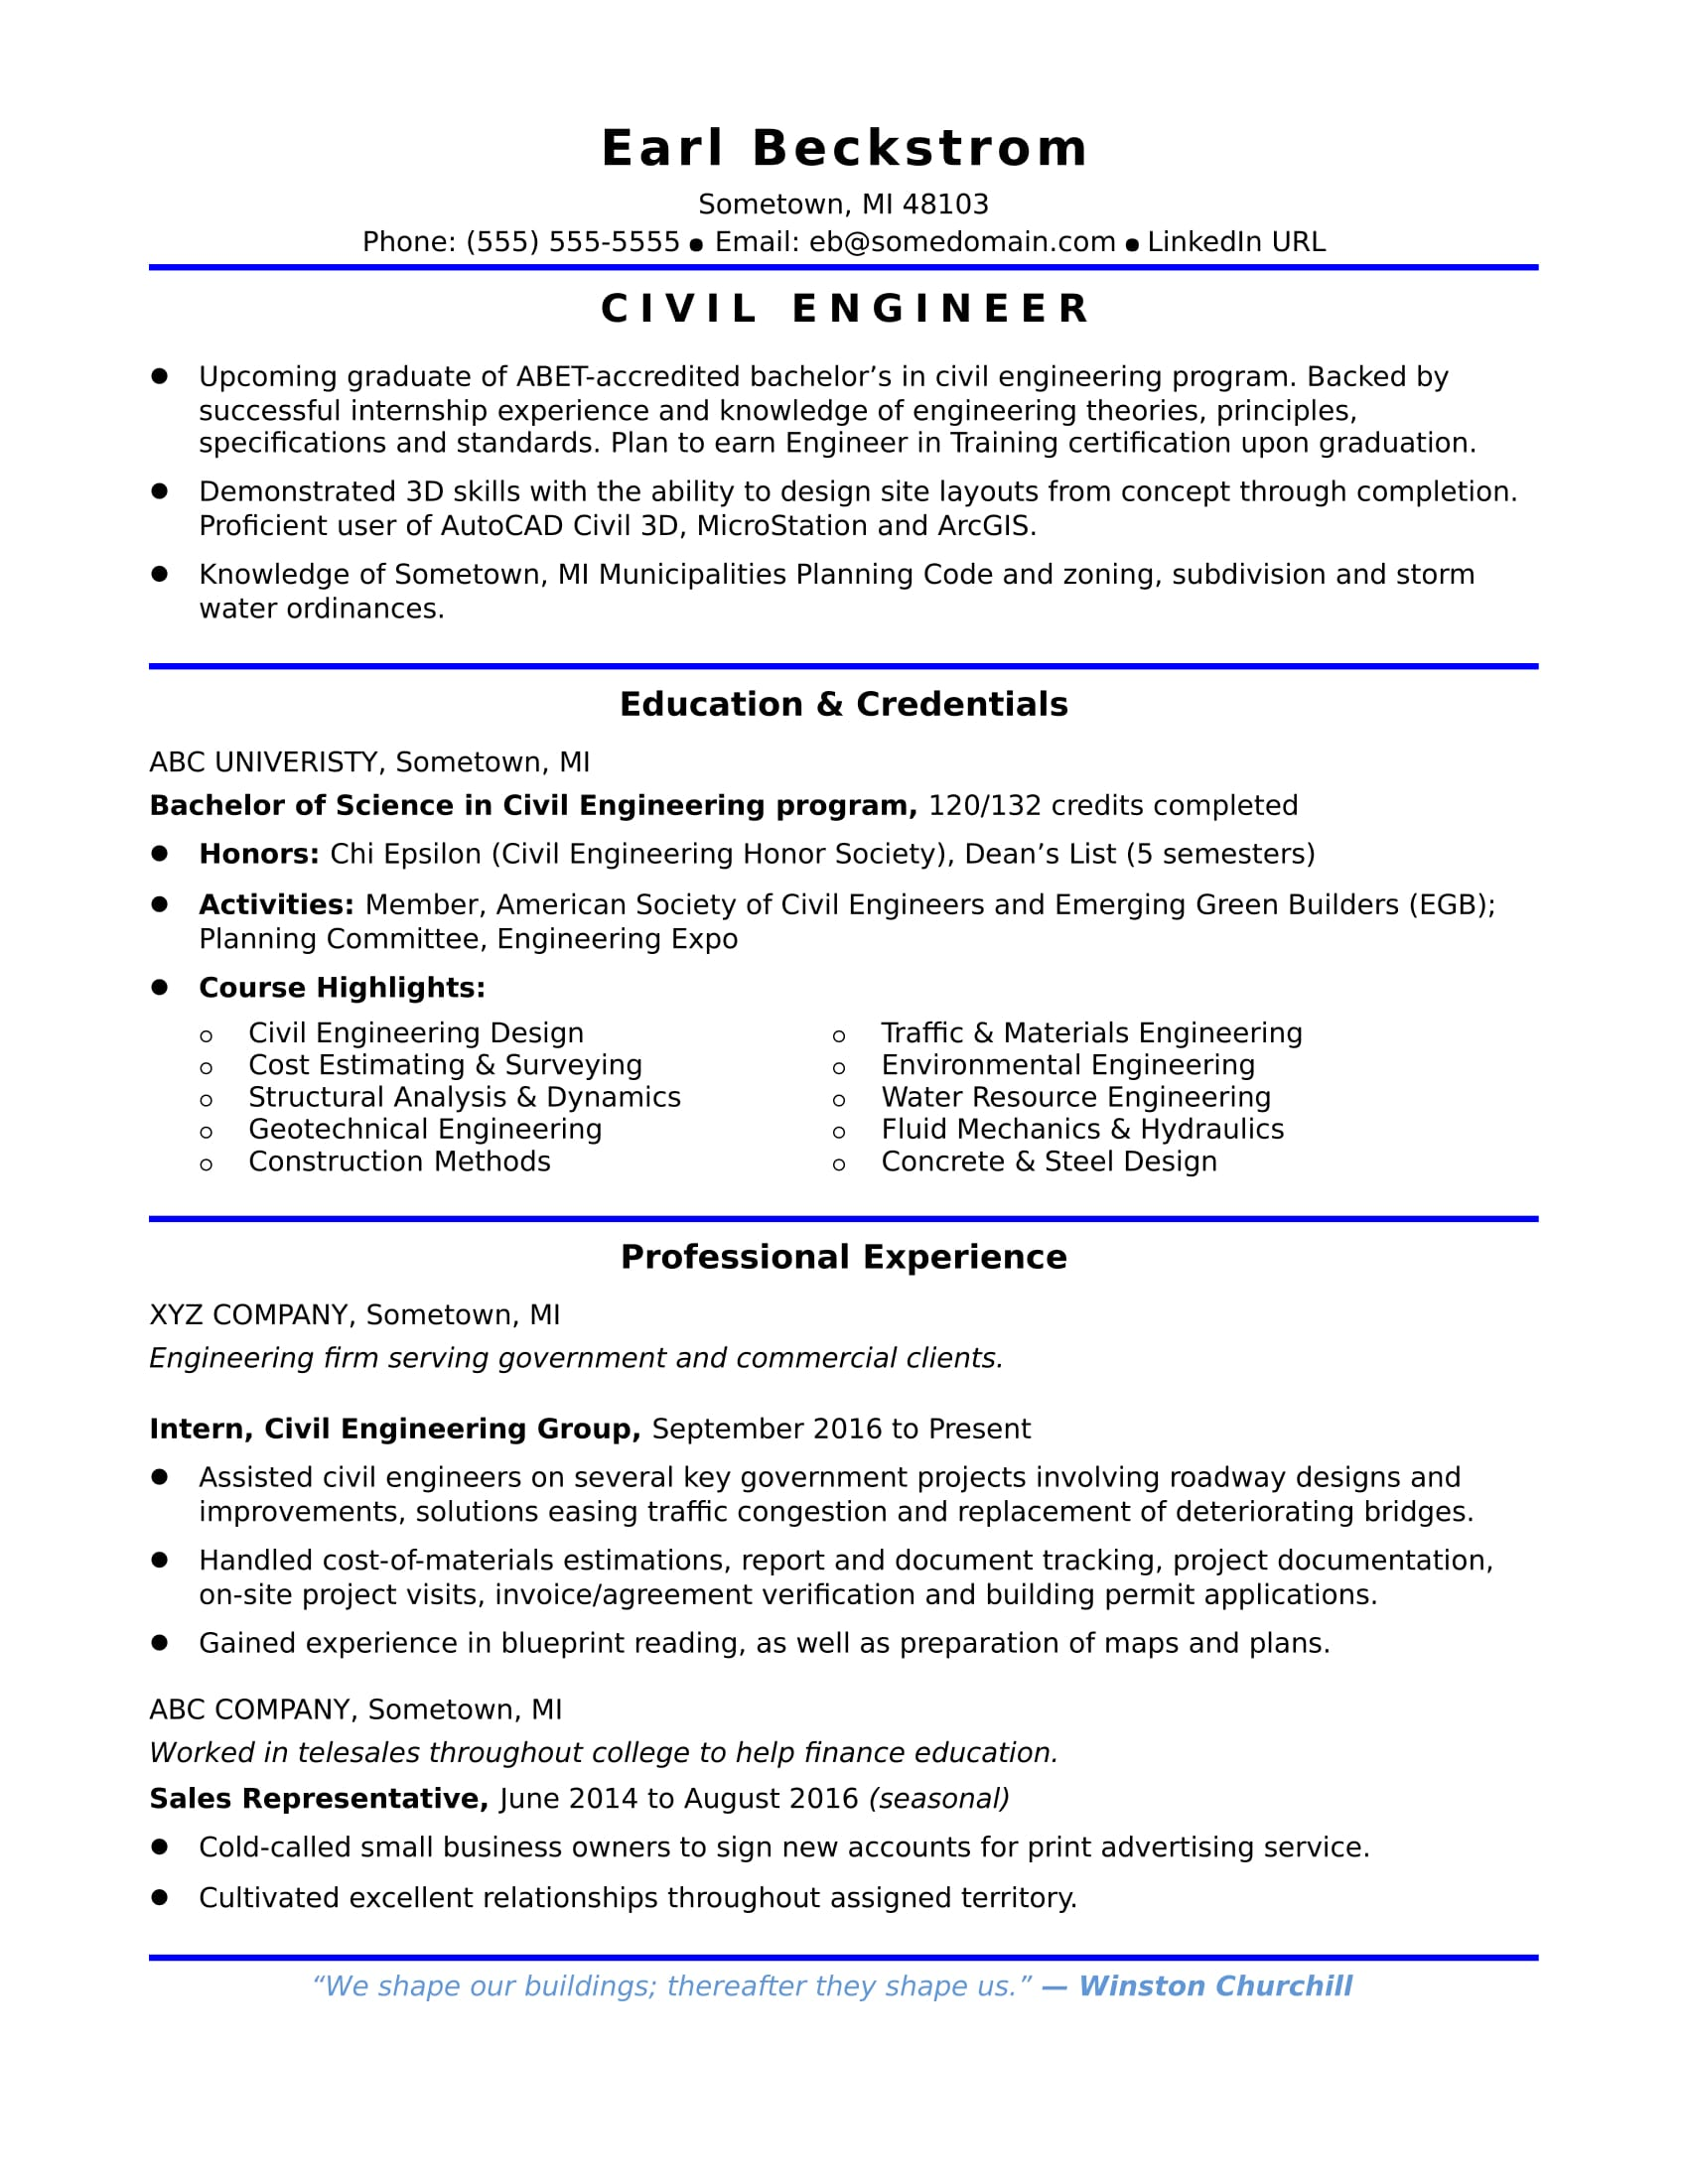 Beautiful Sample Resume For An Entry Level Civil Engineer And Civil Engineer Resume Sample